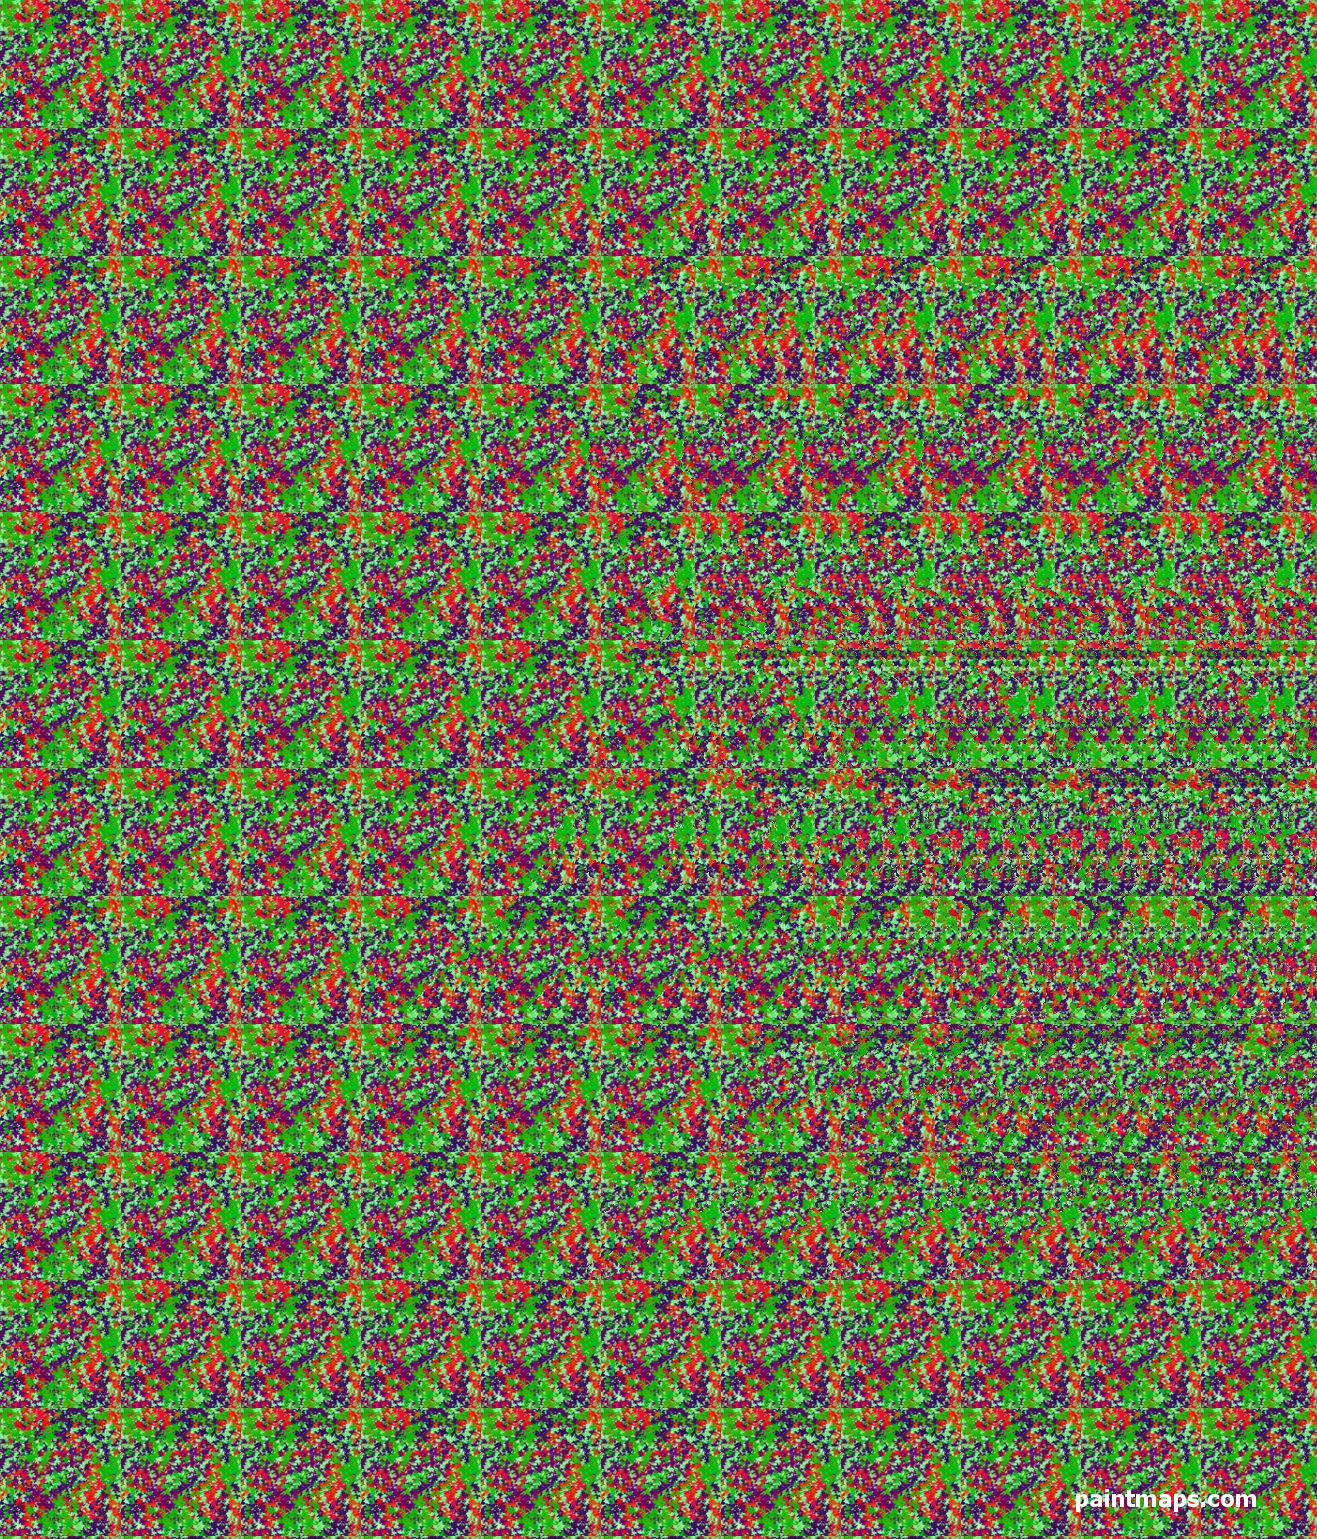 PHILIPPINES Map in 3D Stereogram (Magic Eye)